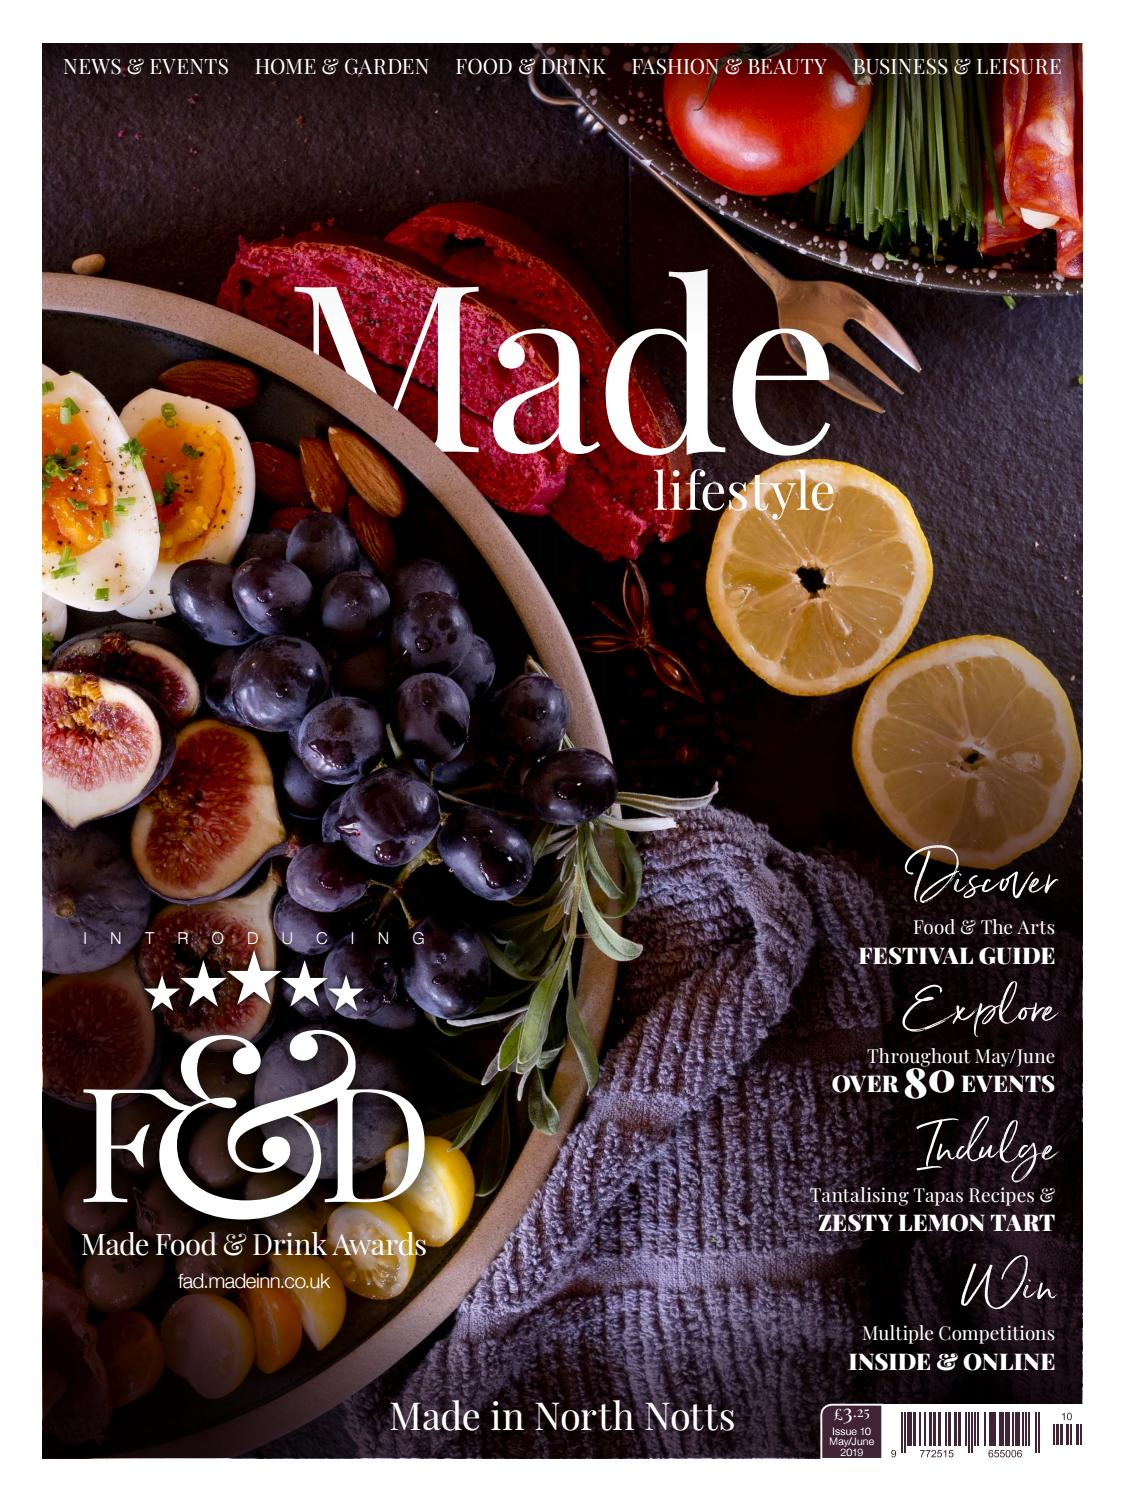 reputable site 39629 ee6be Made lifestyle magazine - Issue 10 by Made Lifestyle Magazine - issuu